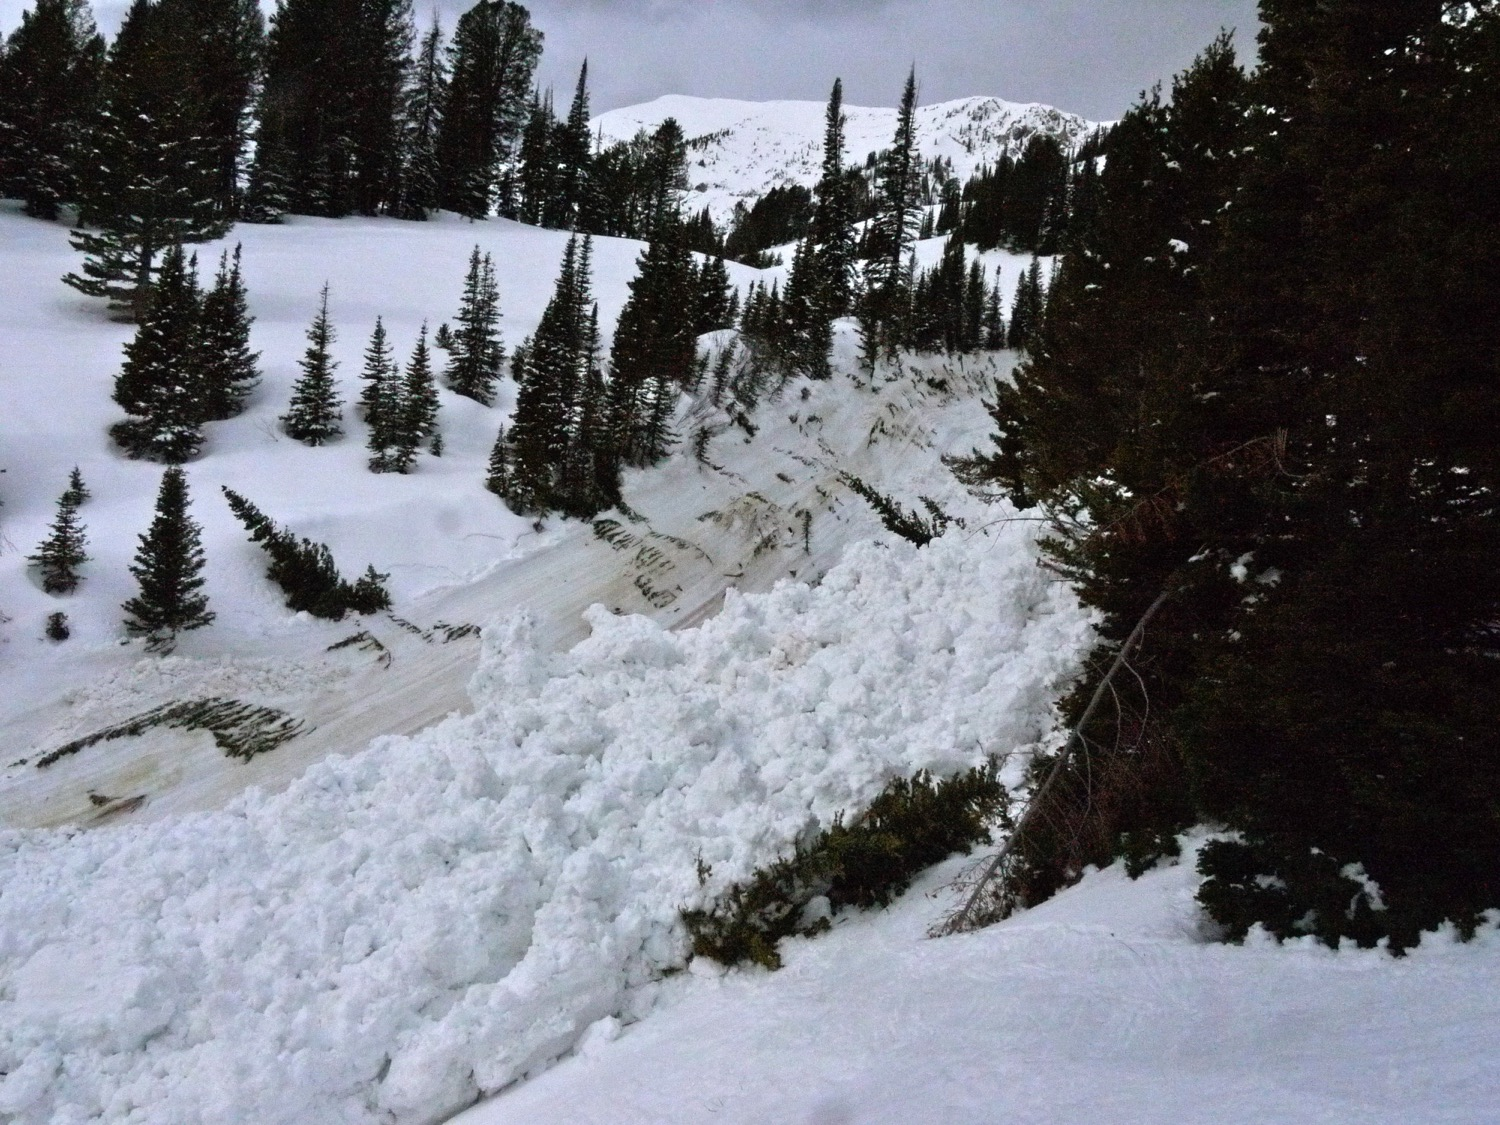 Avalanche debris from the destructive wet slide cycle of 2011, at Bridger Bowl. (Photo by Emily Stifler Wolfe)